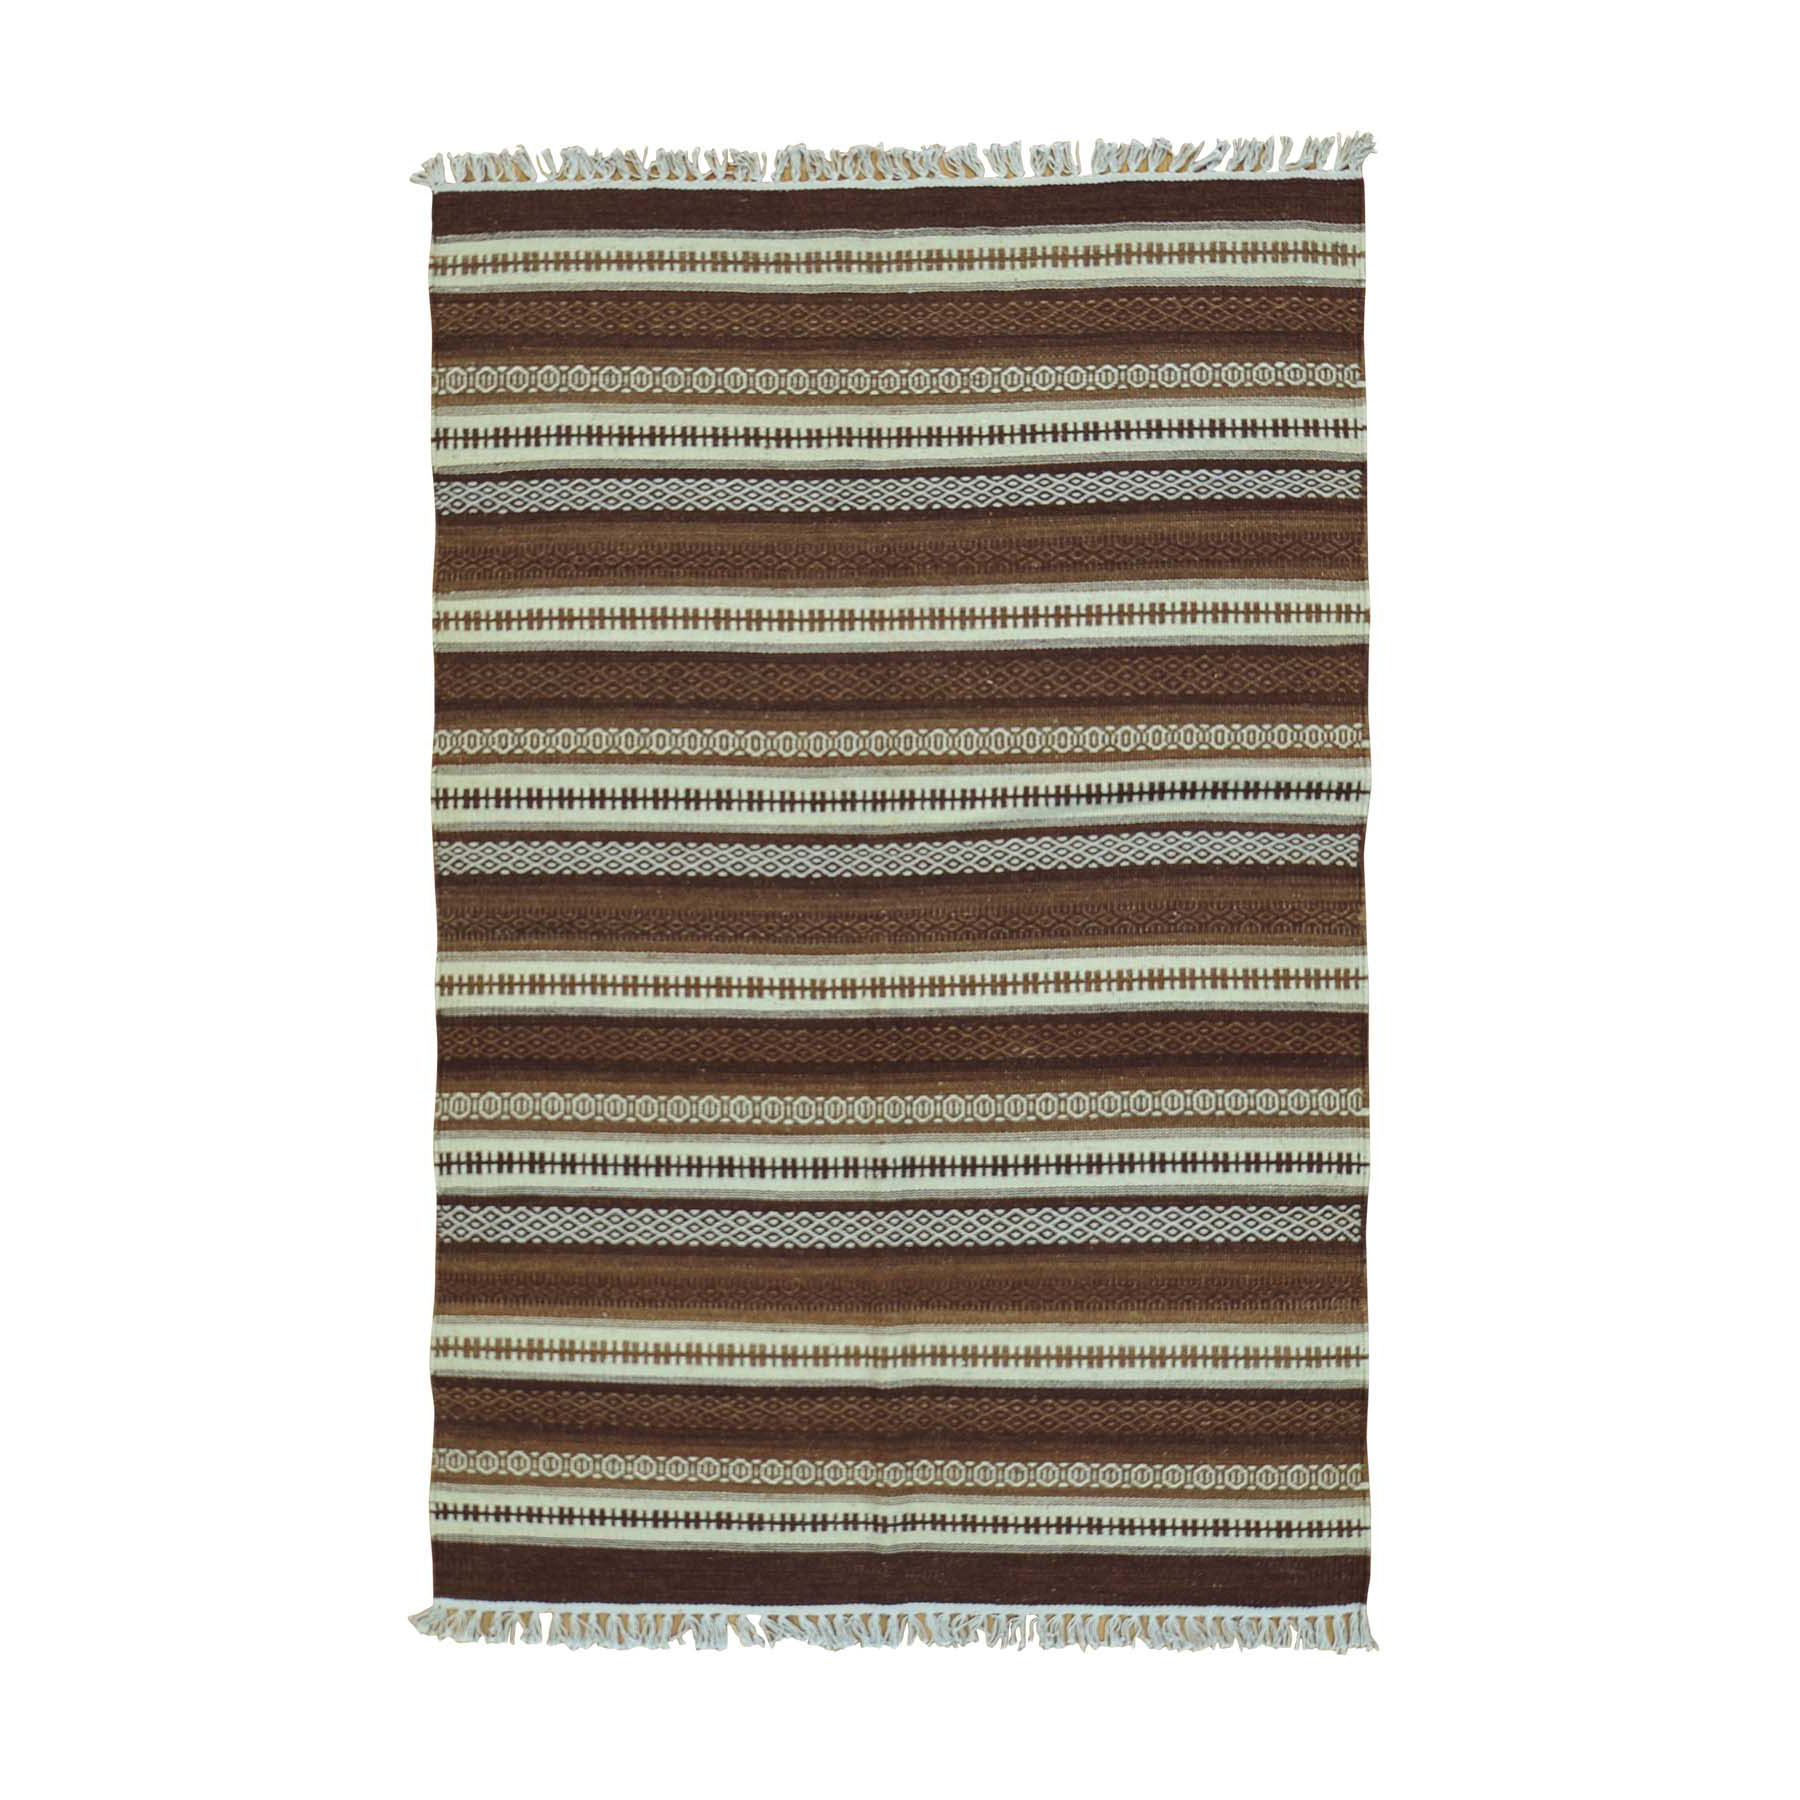 4'X6' Striped Shades Of Brown Kilim Pure Wool Hand Woven Rug moac00a6